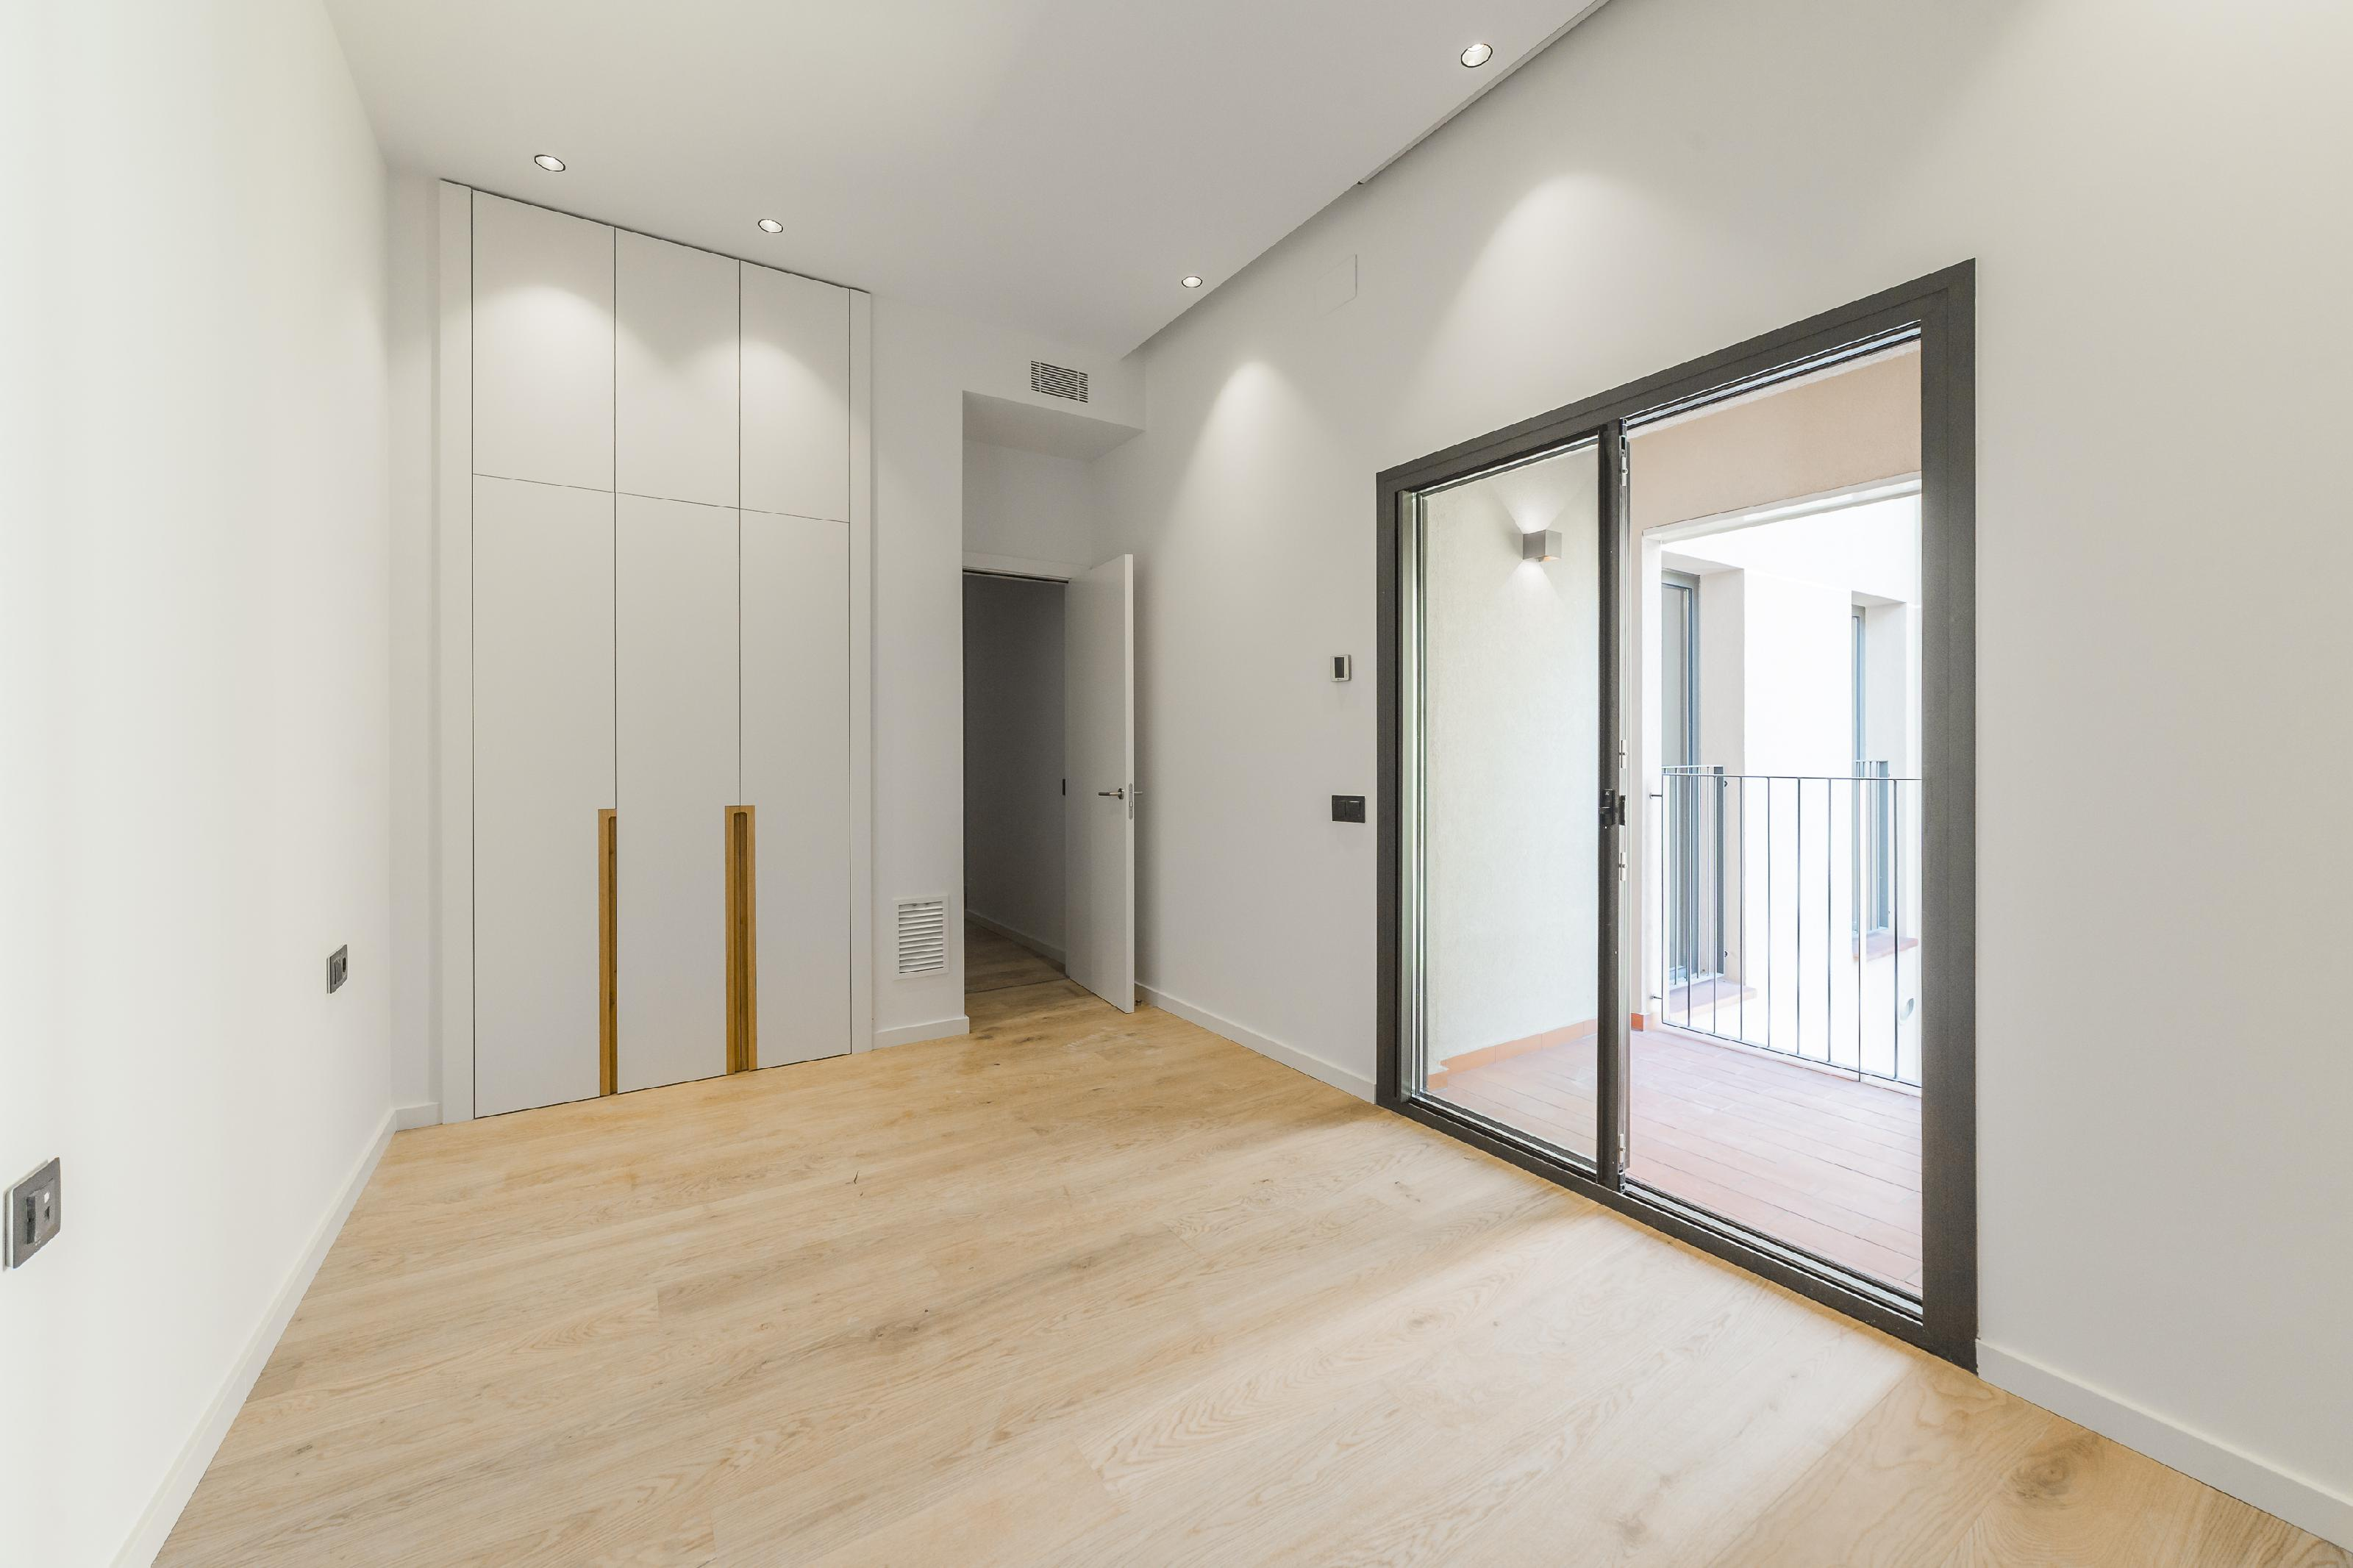 182474 Apartment for sale in Eixample, Old Left Eixample 28